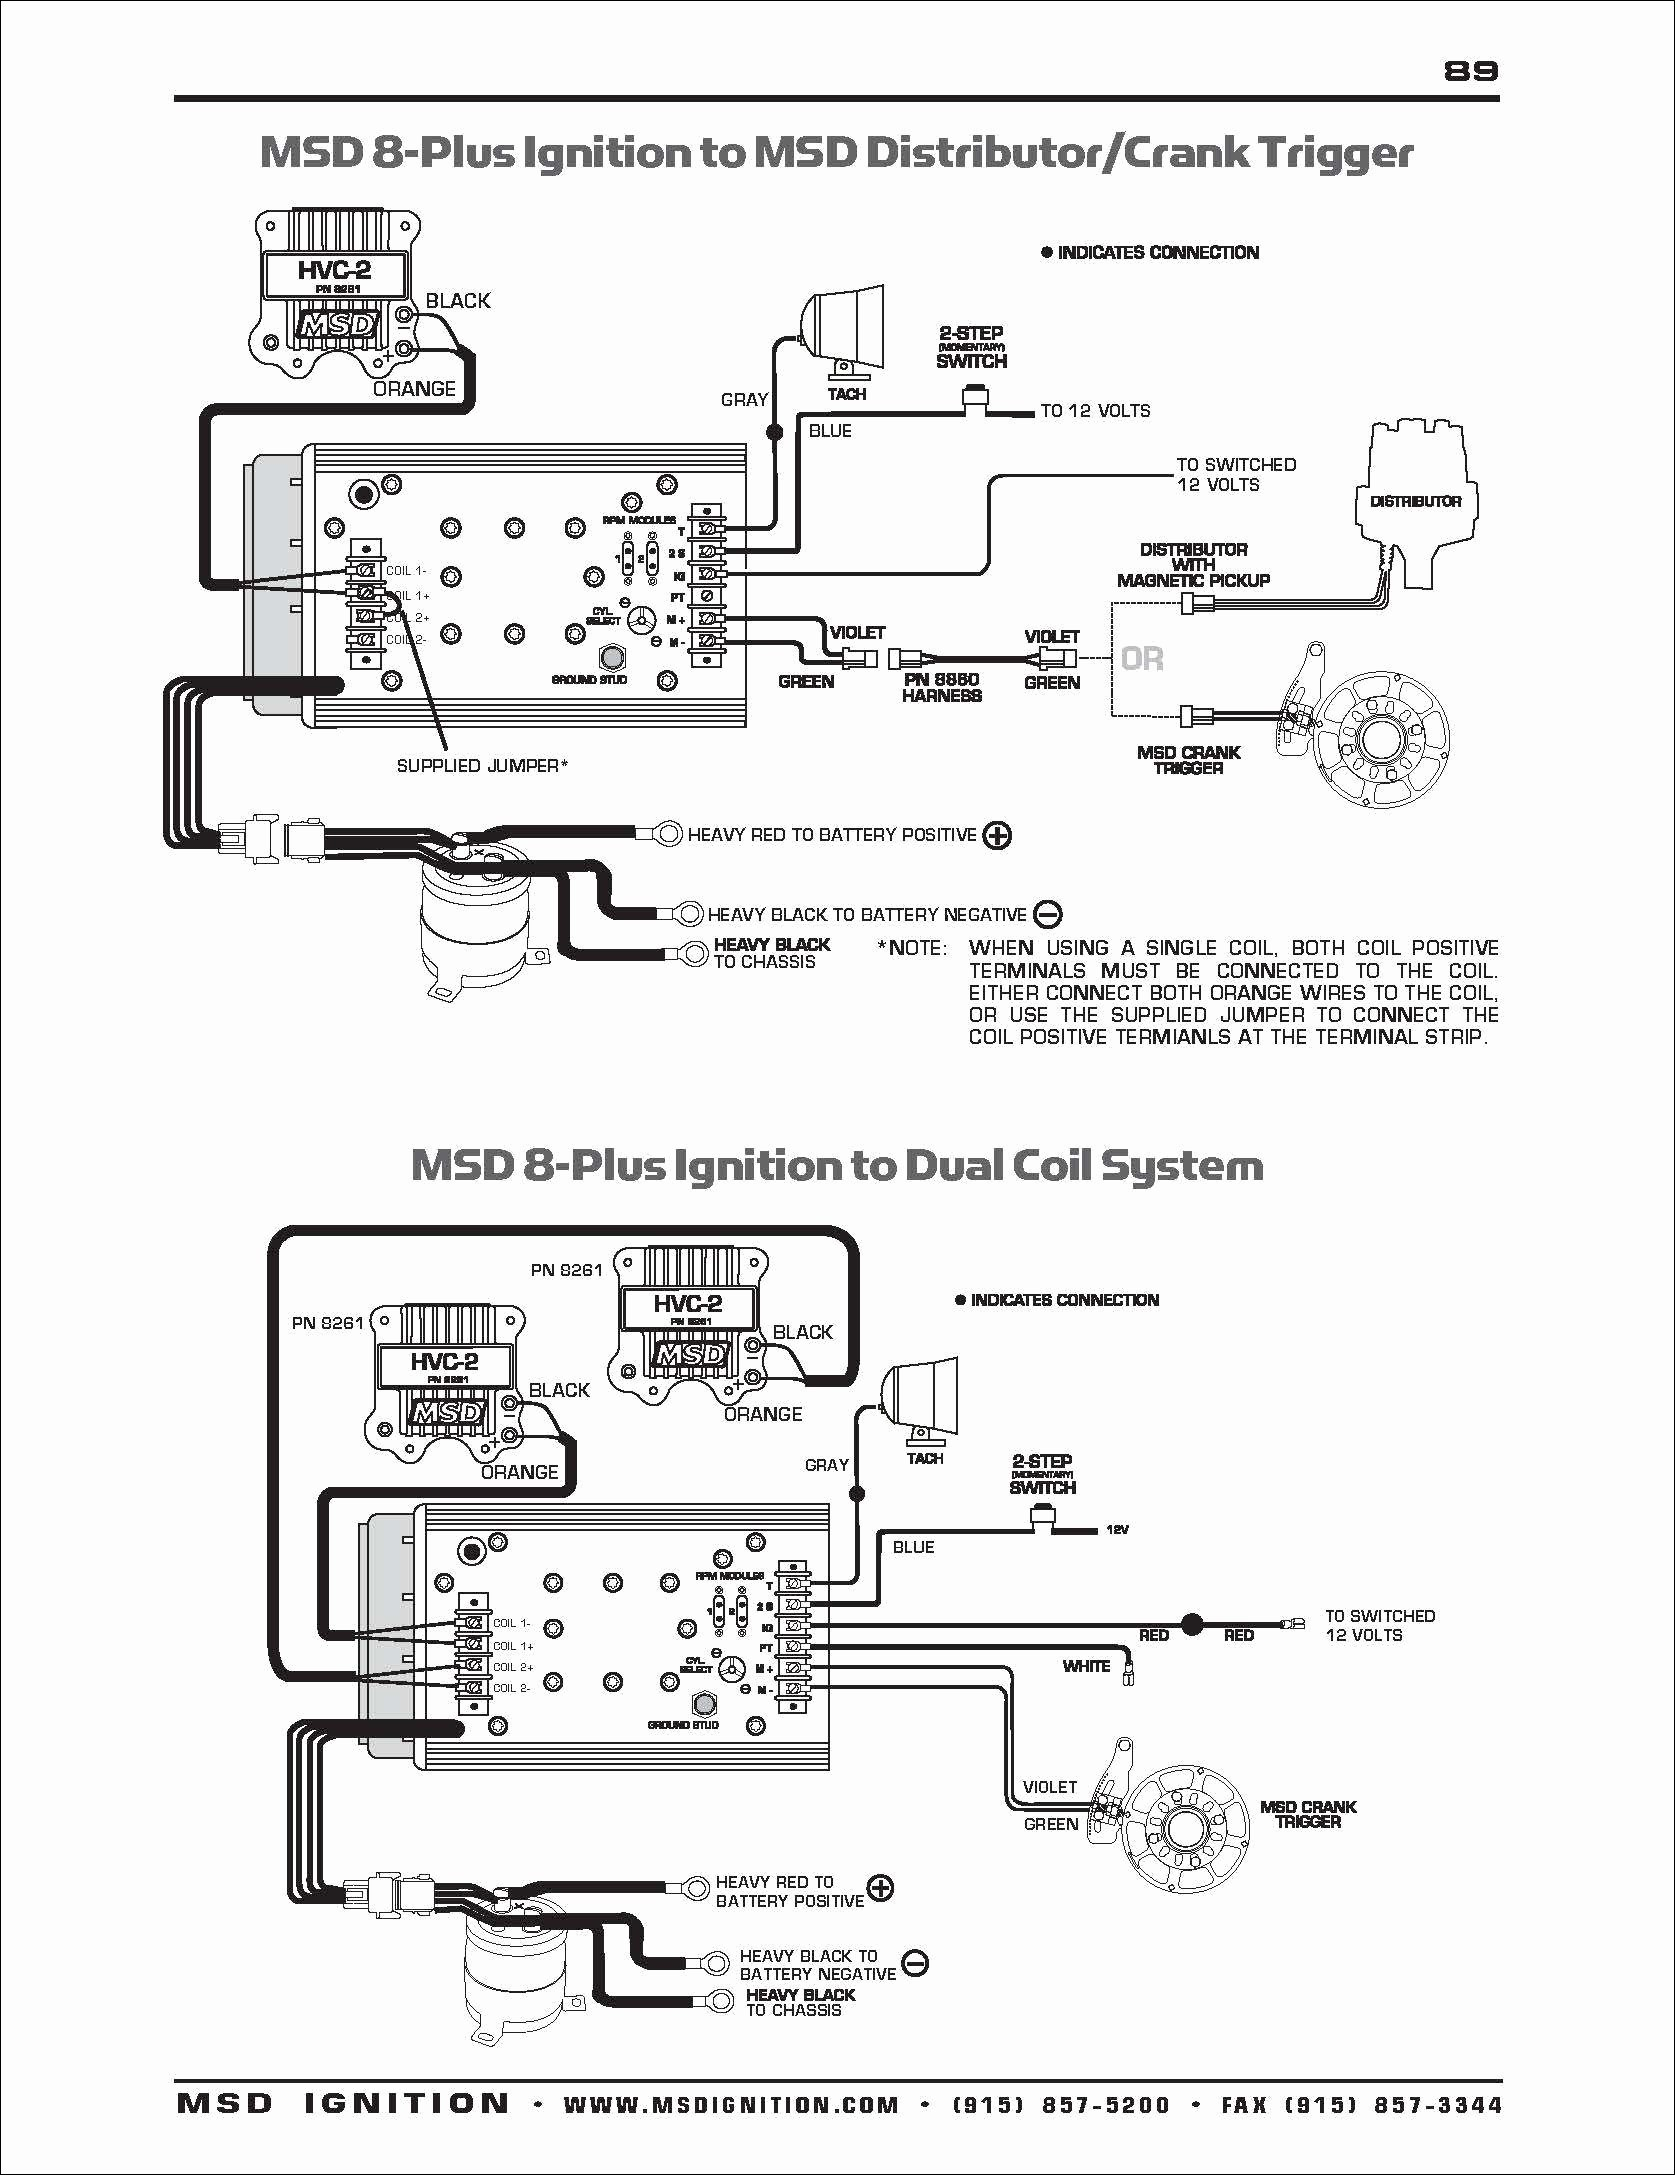 Wiring A Msd 7530 Wiring Harness Wiring Diagram Row Wiring A Msd 7530 Wiring Harness